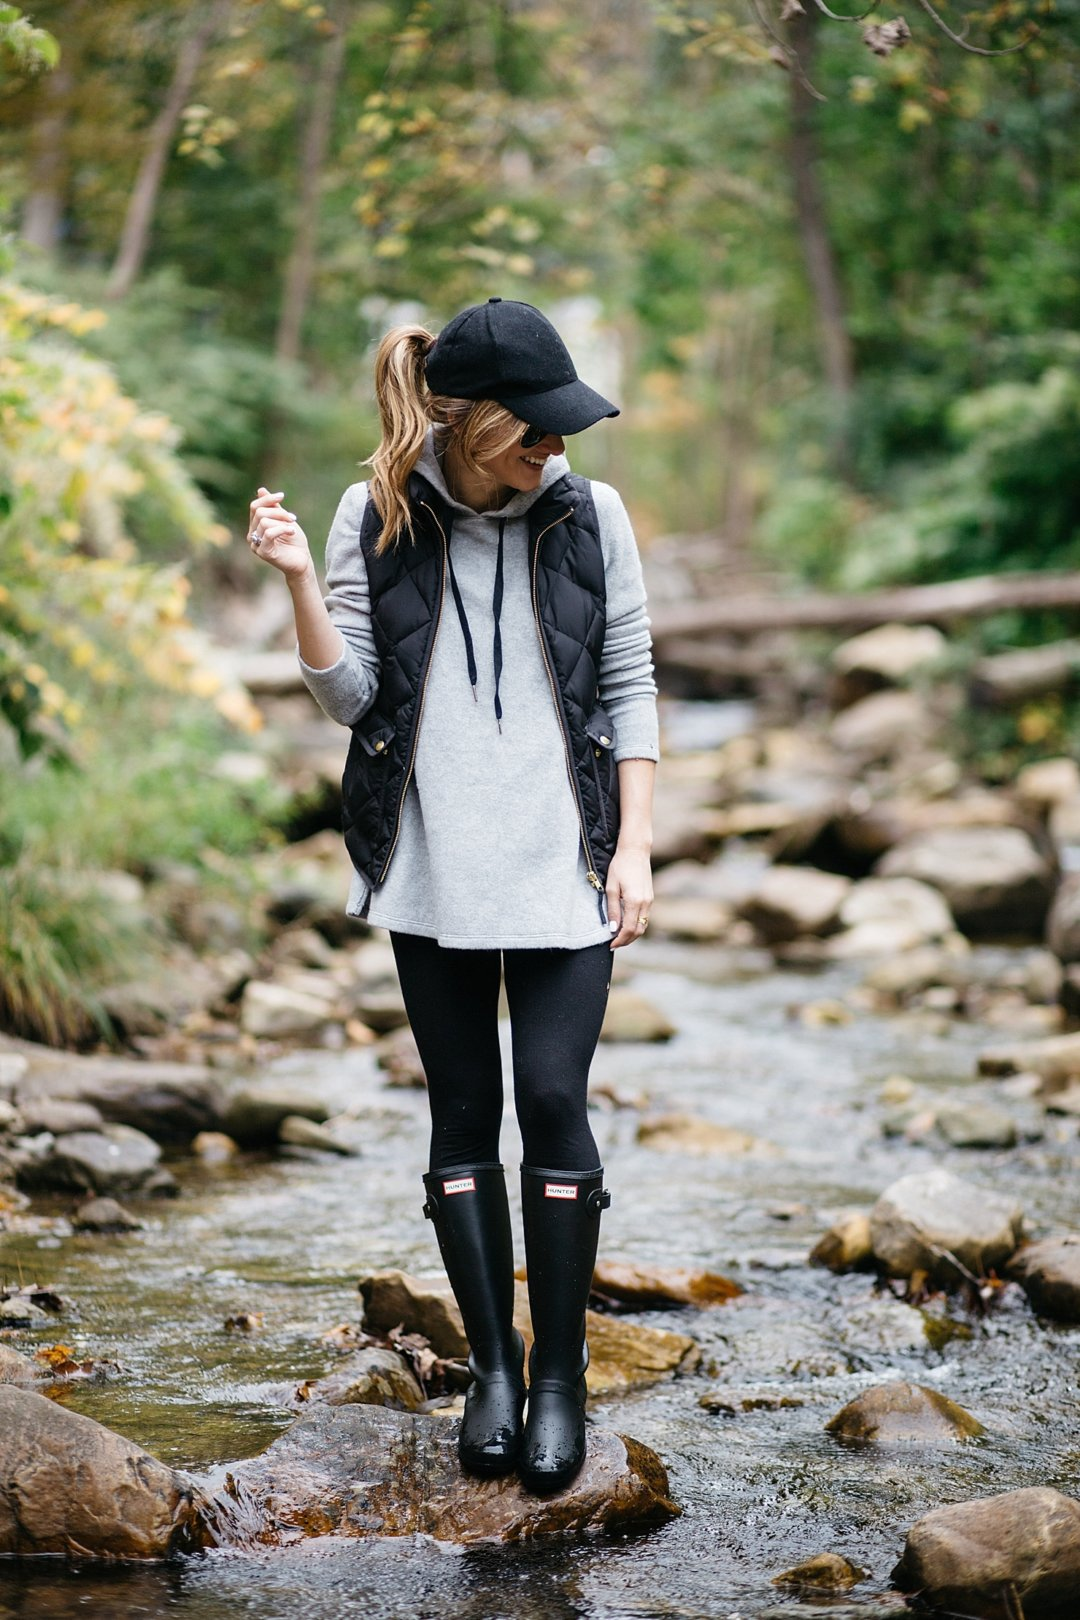 J. Crew Puffer vest and Hunter Boots